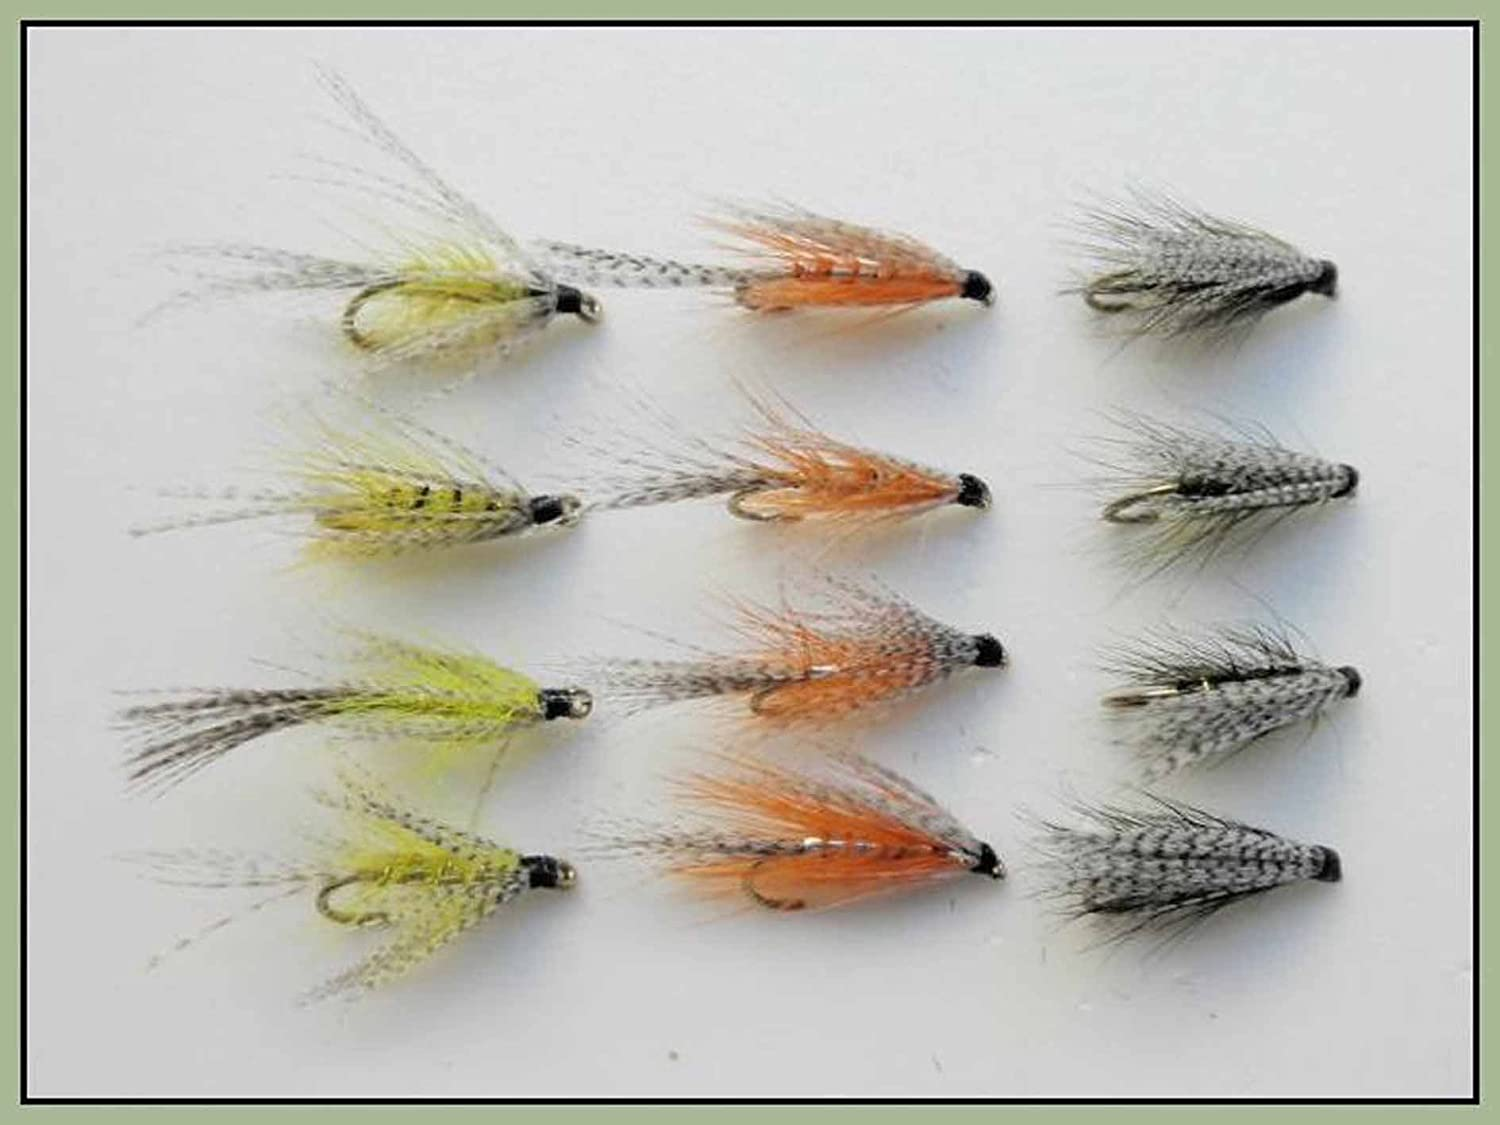 Size 10//12, Wet Fishing Flies 12 Pack Hares Ear March Brown /& Greenwell